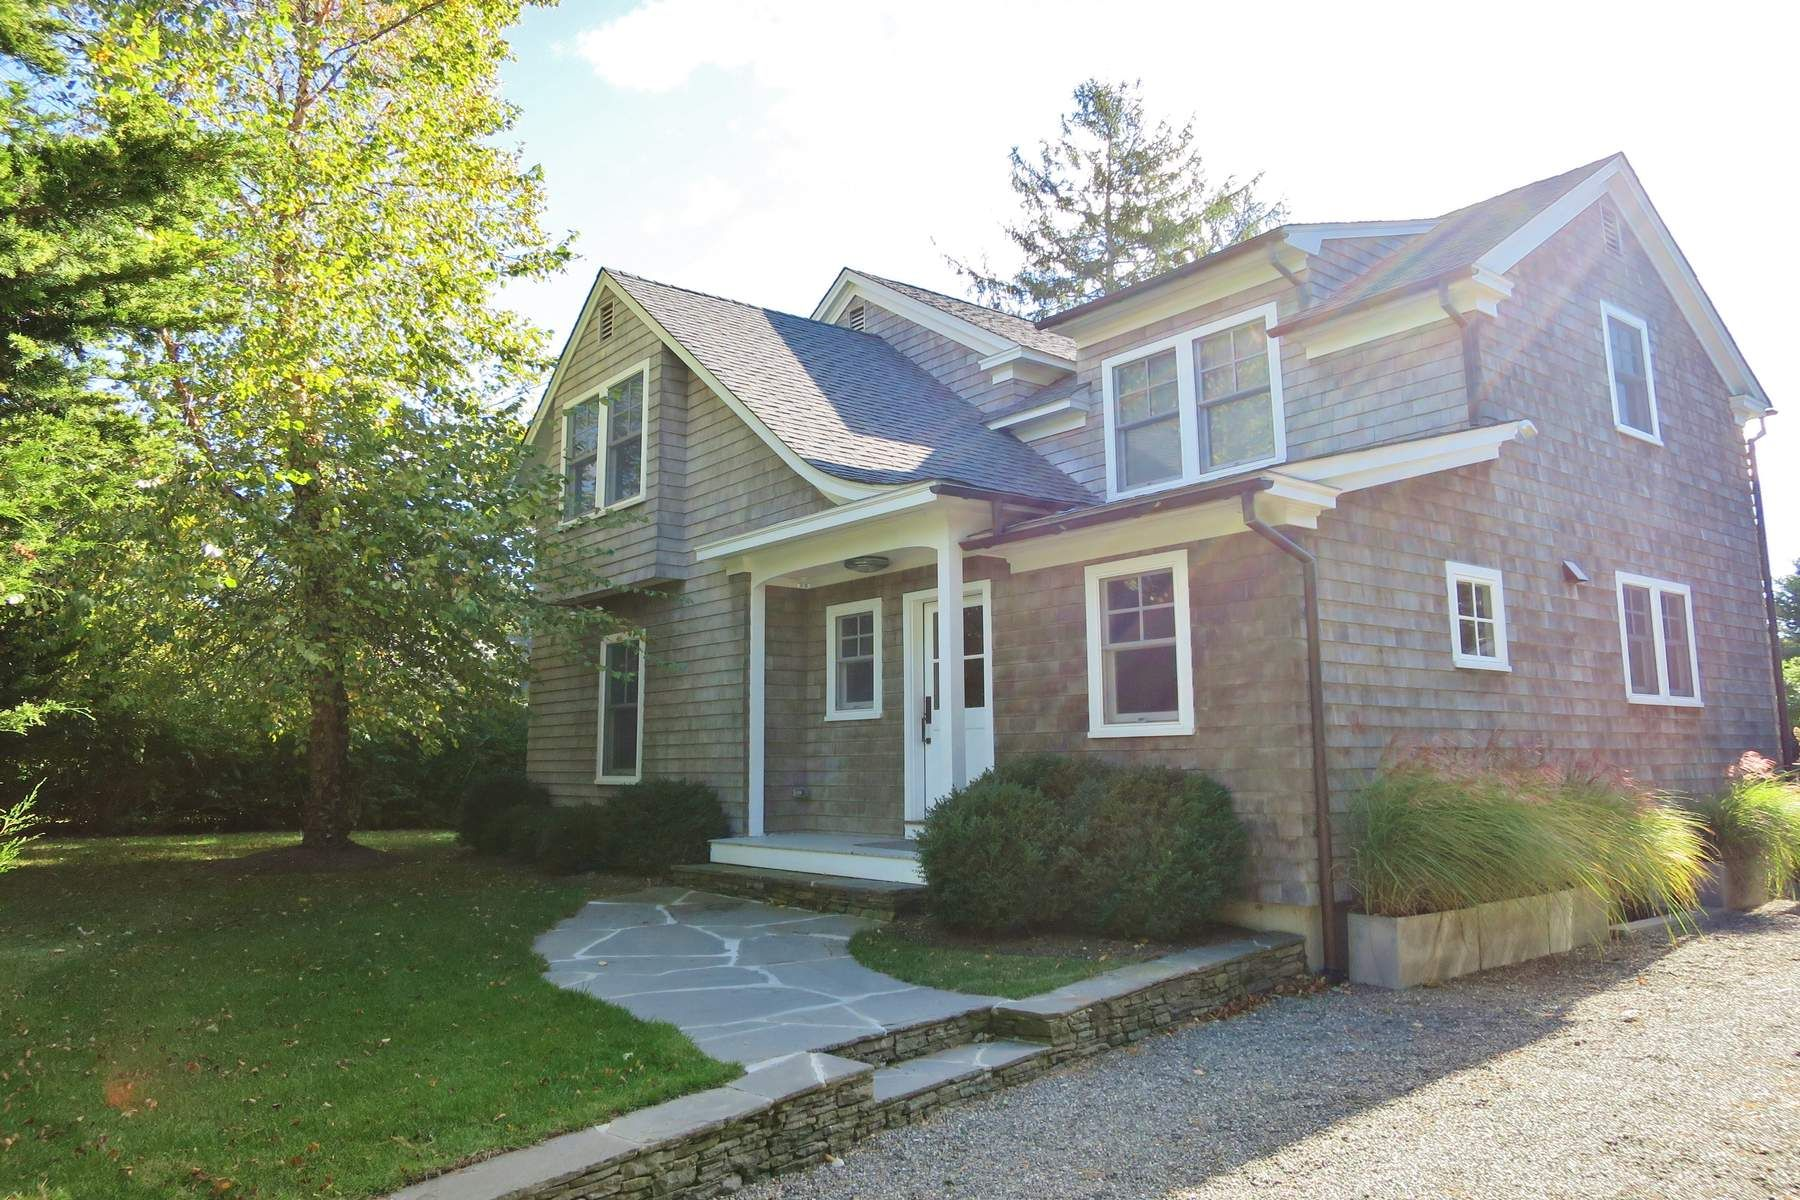 Single Family Home for Rent at PRISTINE HOME - SOUTHAMPTON SHORES Southampton, New York 11968 United States